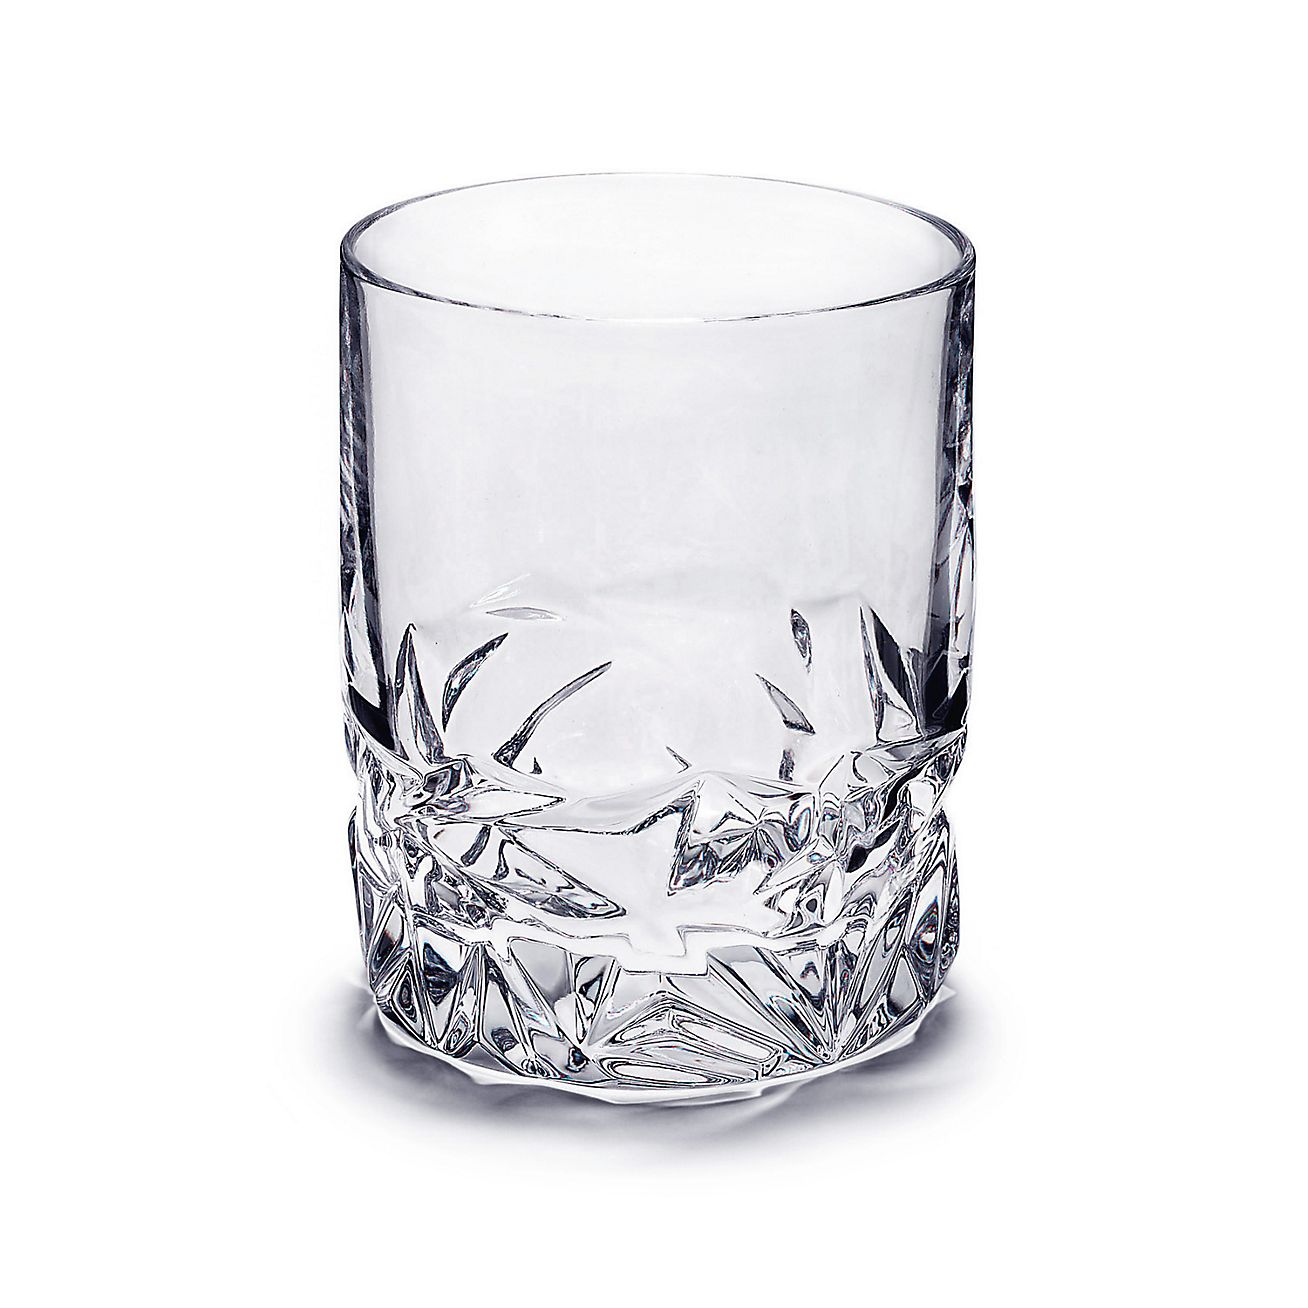 Rock Cut Double Old Fashioned Glass In Crystal. | Tiffany U0026 Co.